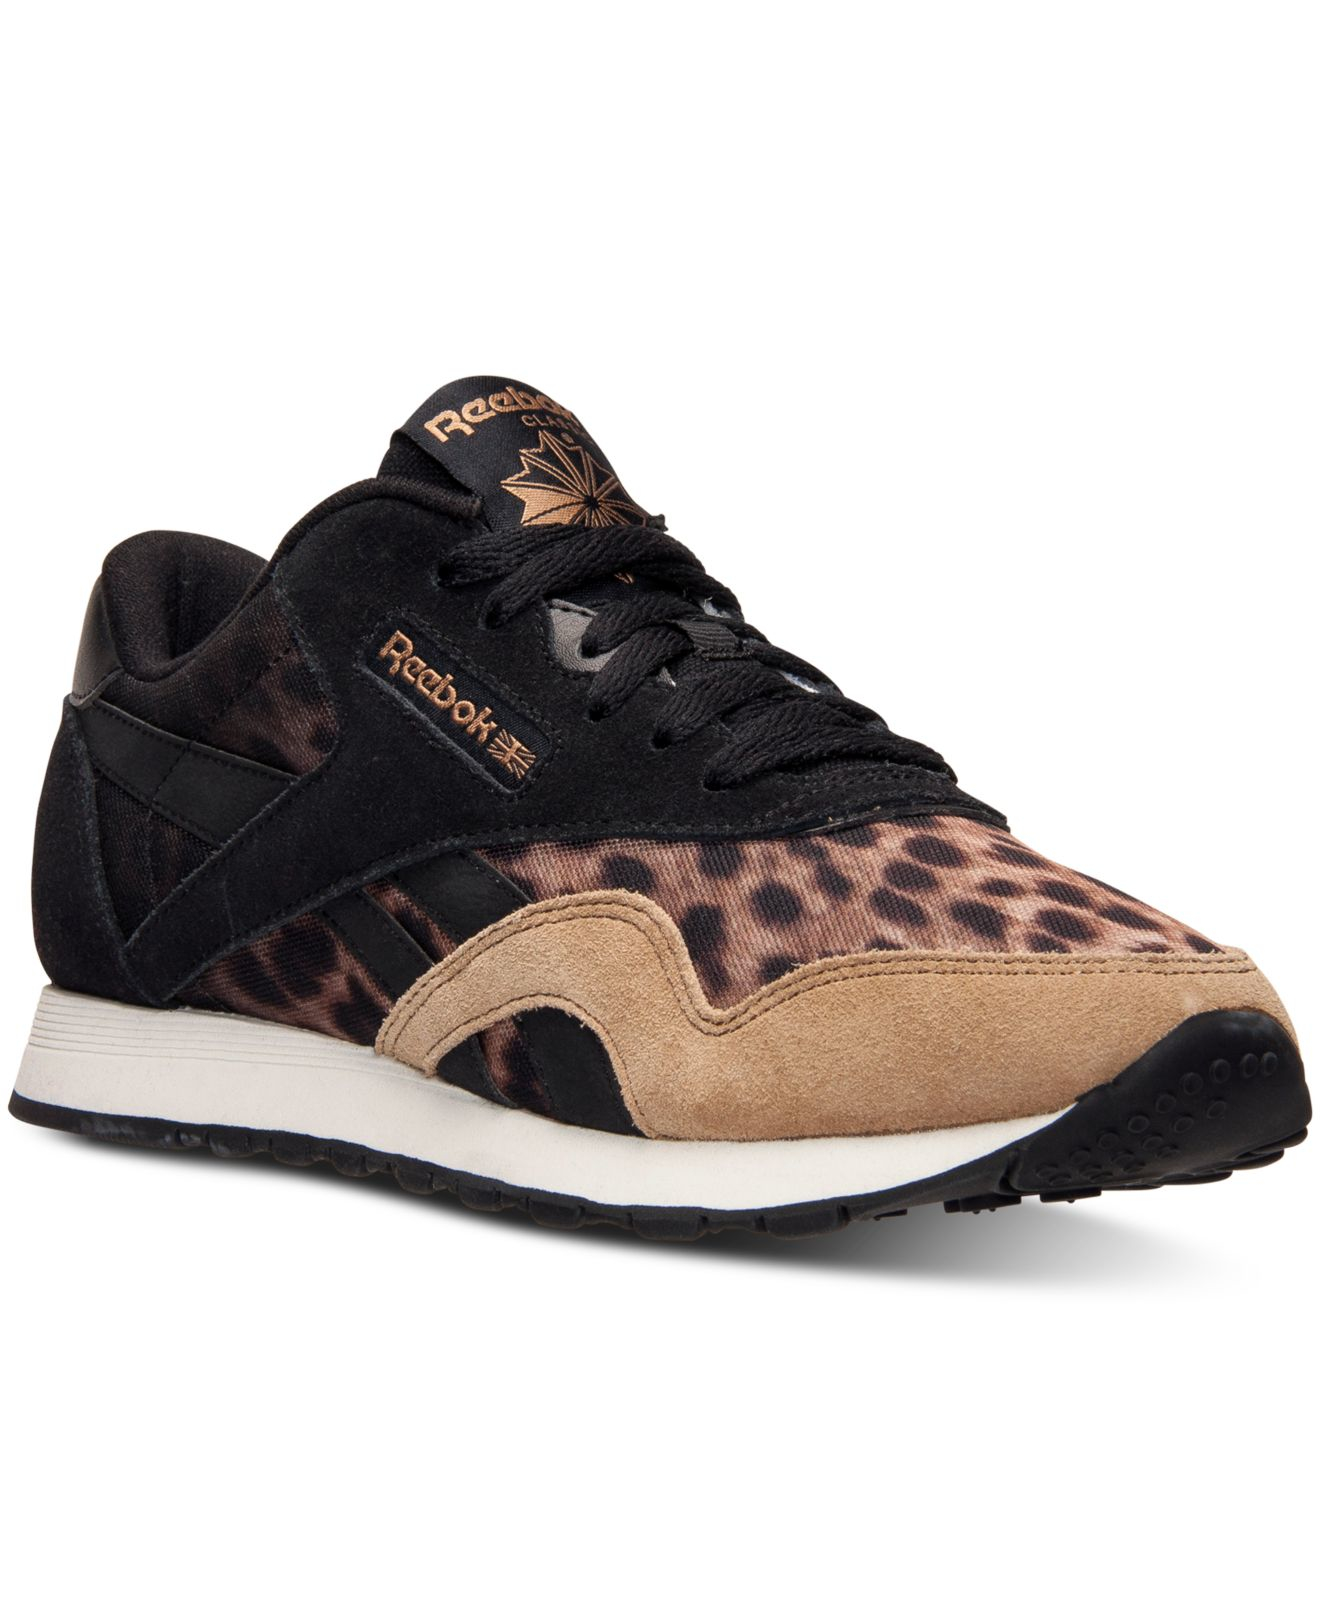 Lyst - Reebok Women s Classic Nylon Wild Casual Sneakers From Finish ... ffb242c79